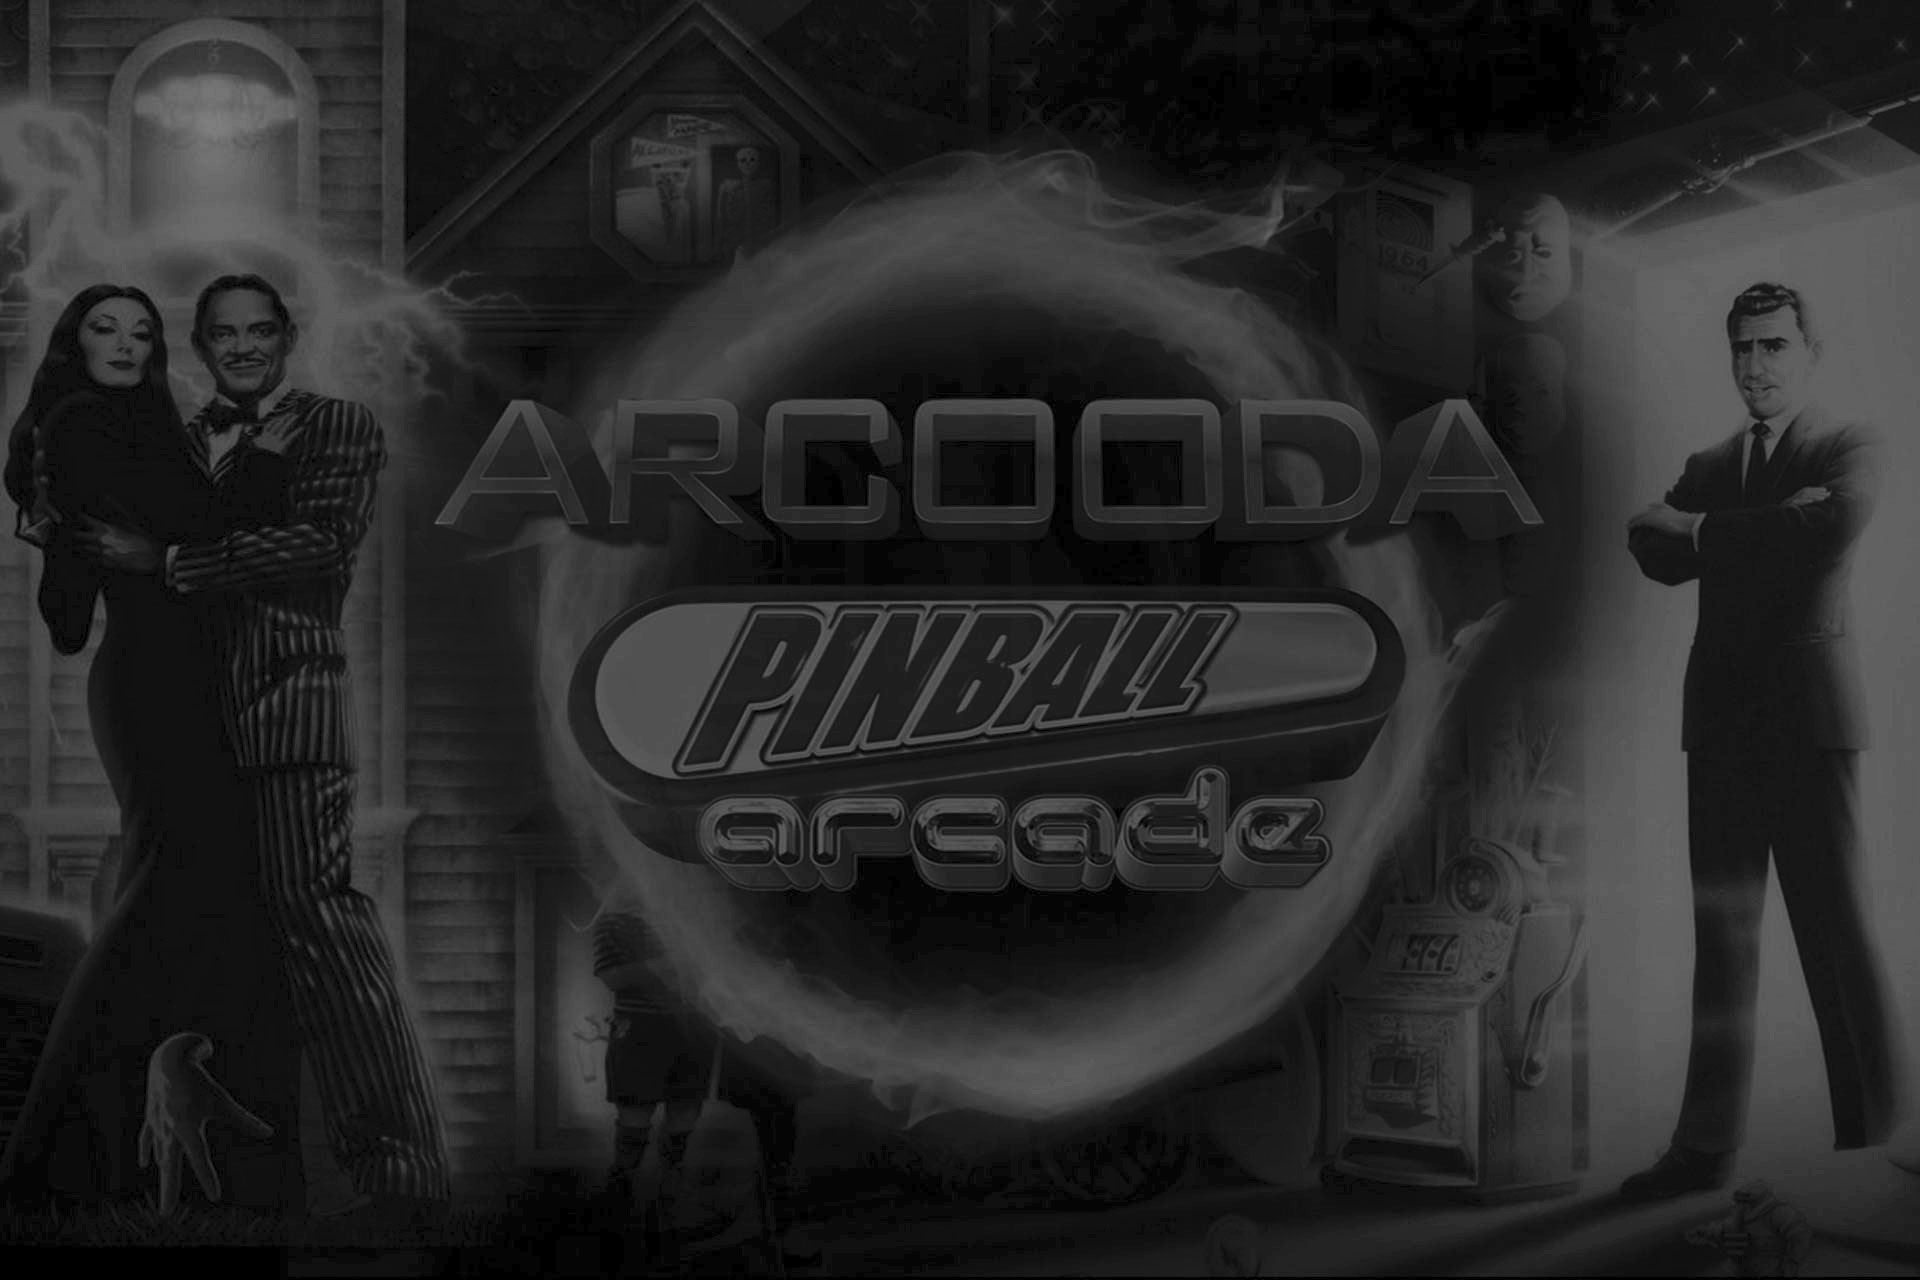 Arcooda Pinball Arcade Software for your Video Pinball Cabinets